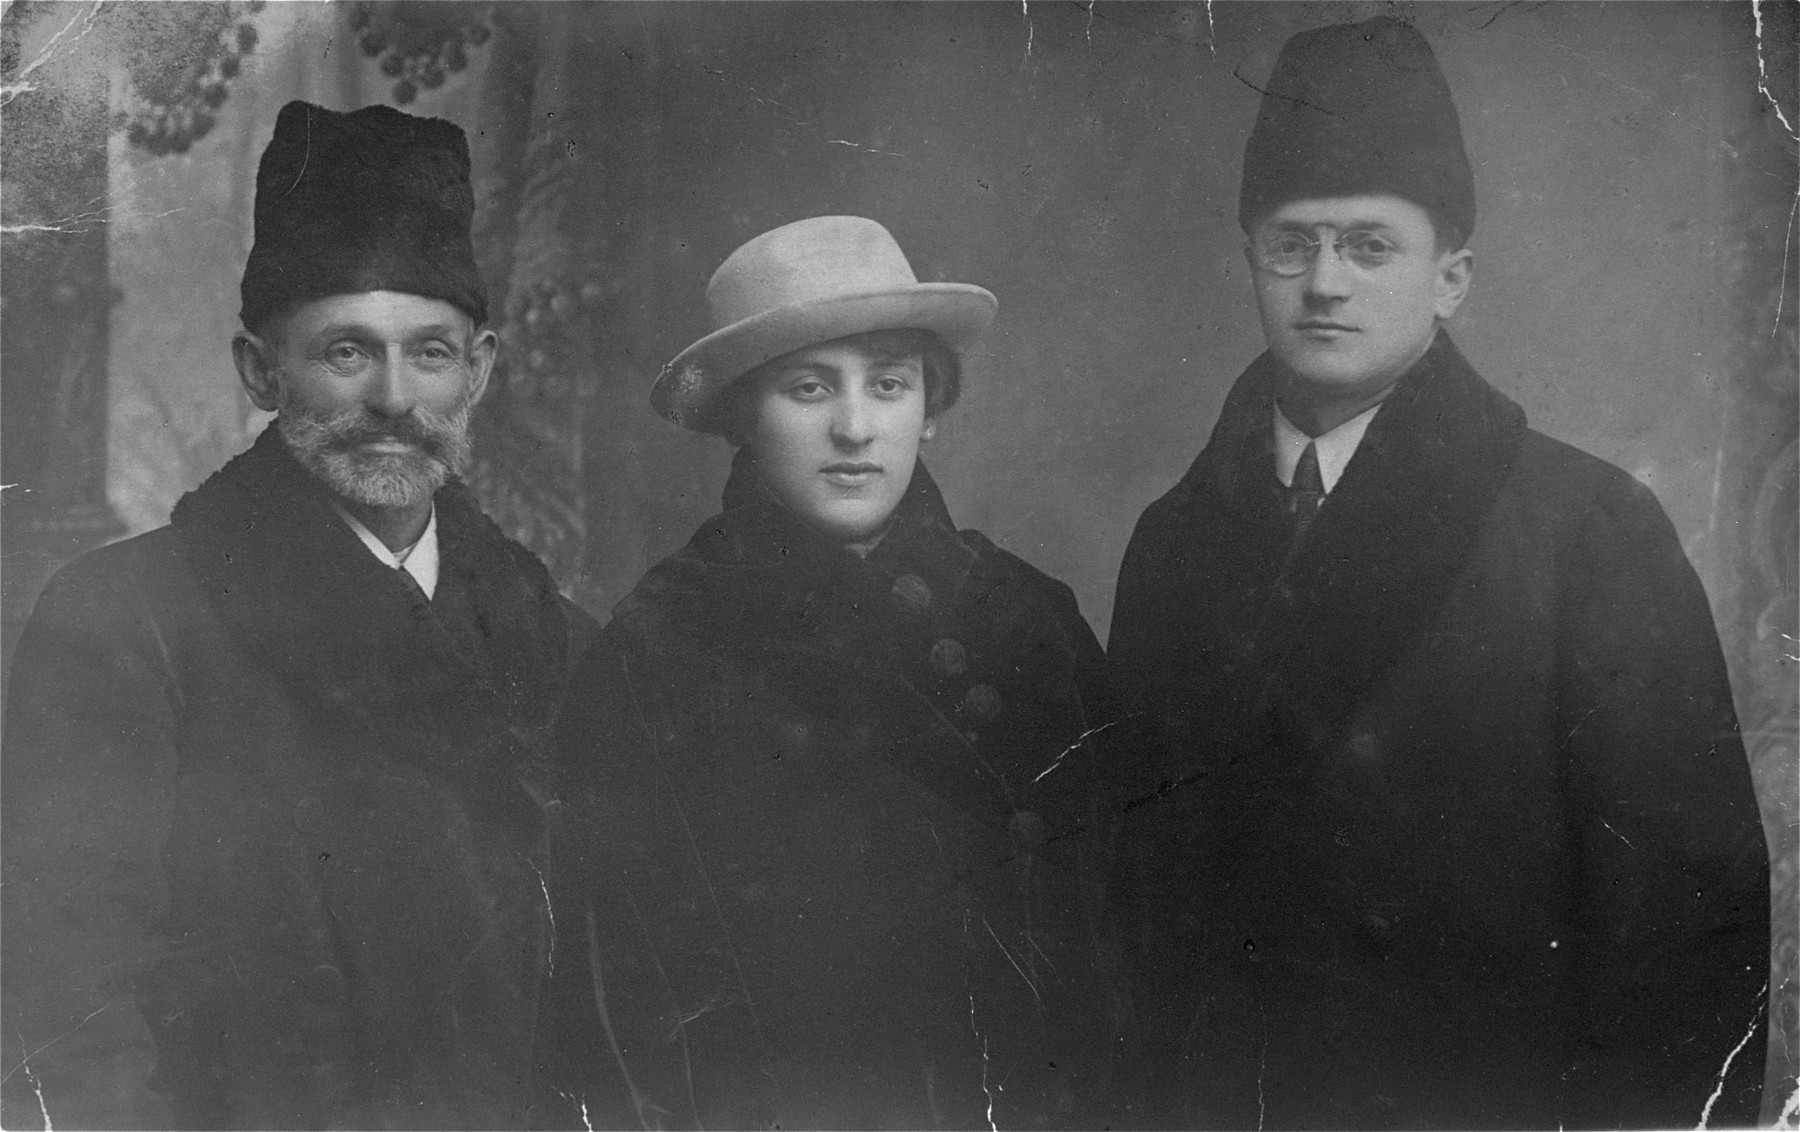 Chaim Borensztajn (left) poses with his daughter, Frymeta, and son-in-law, Lejbus Goldberg.